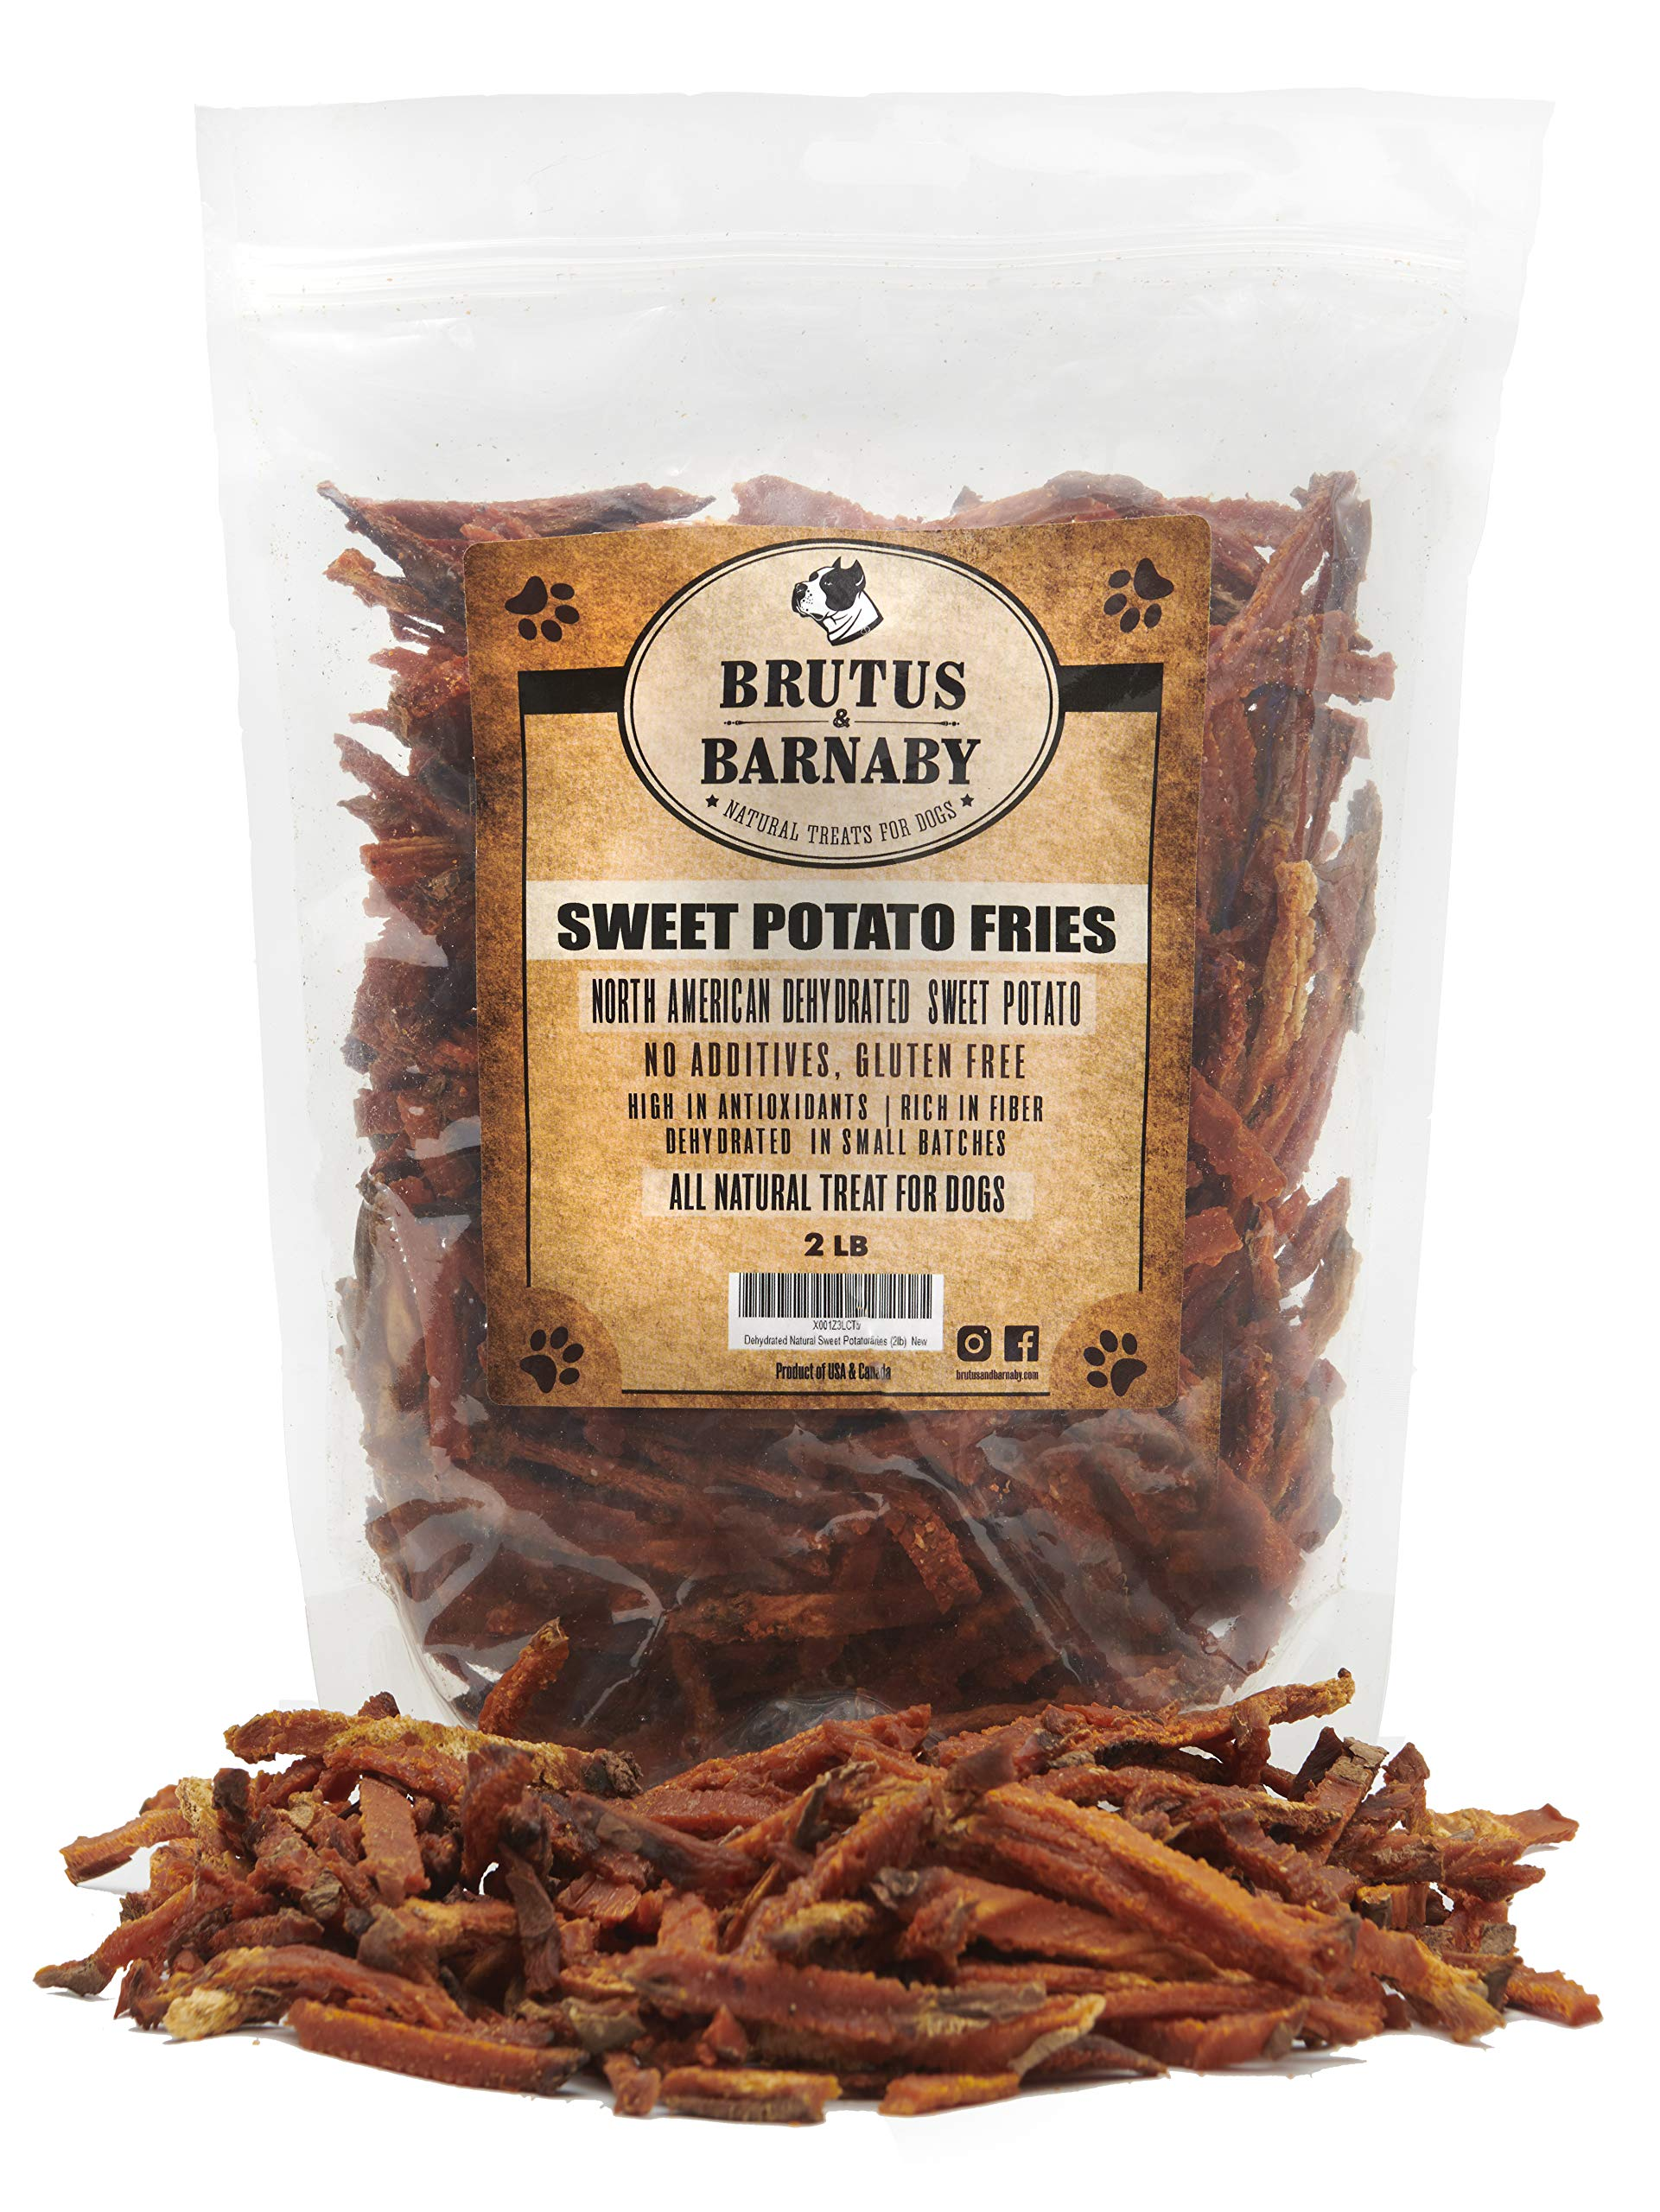 Brutus & Barnaby Sweet Potato Dog Treats- No Additive Dehydrated Sweet Potato Fries, Grain Free, Gluten Free and No Preservatives Added (14 oz) by Brutus & Barnaby